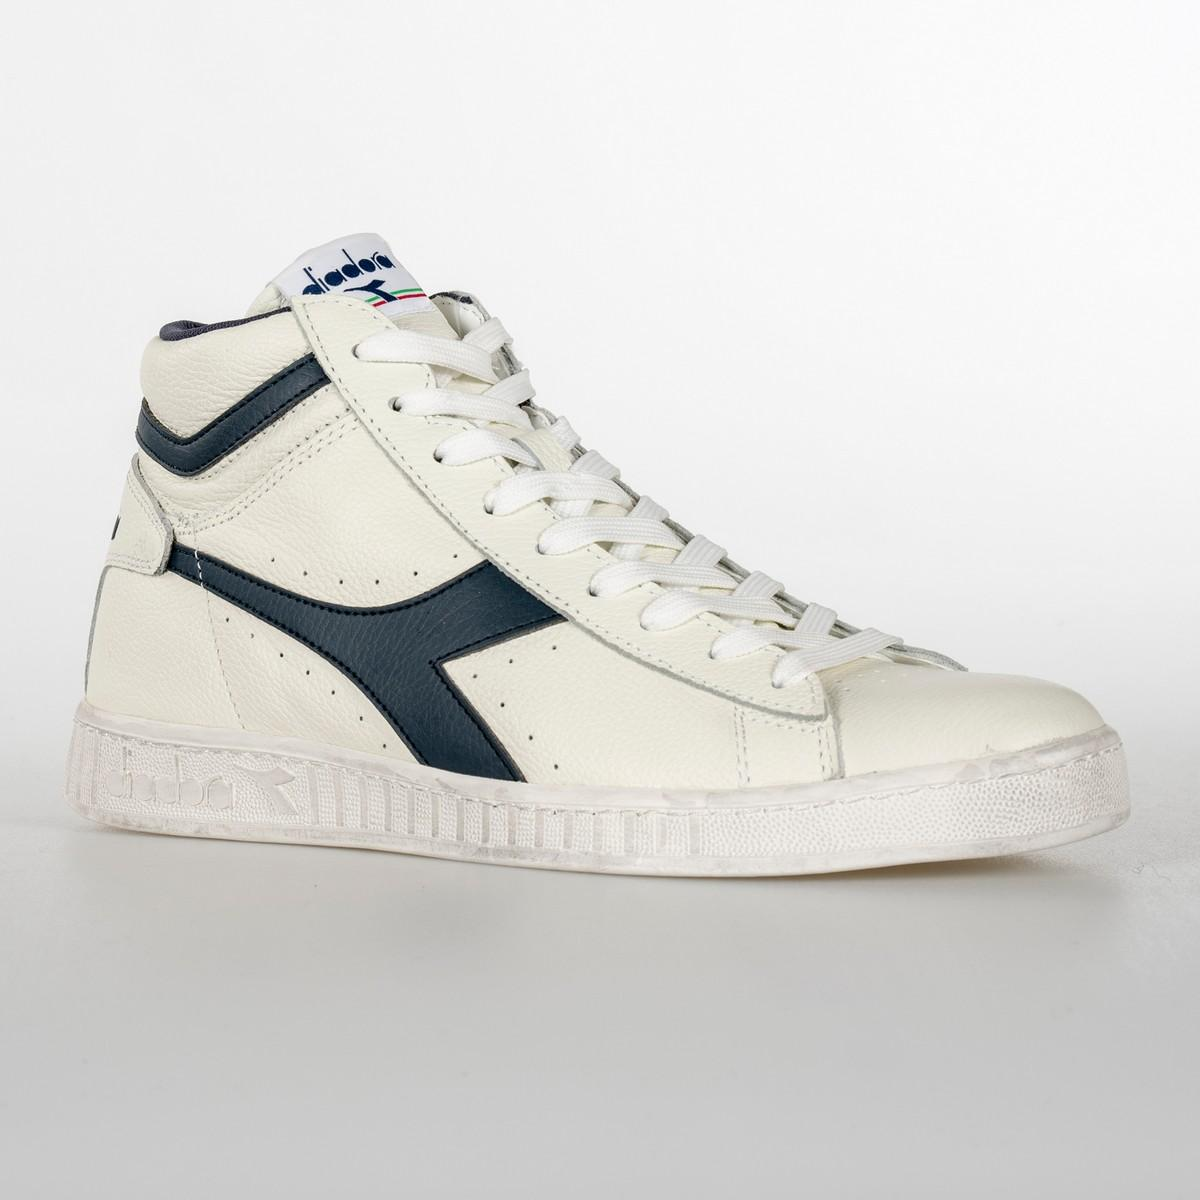 SCARPA UNISEX DIADORA GAME L HIGH WAXED C5262 BIANCO BLU 2b10ca7b455